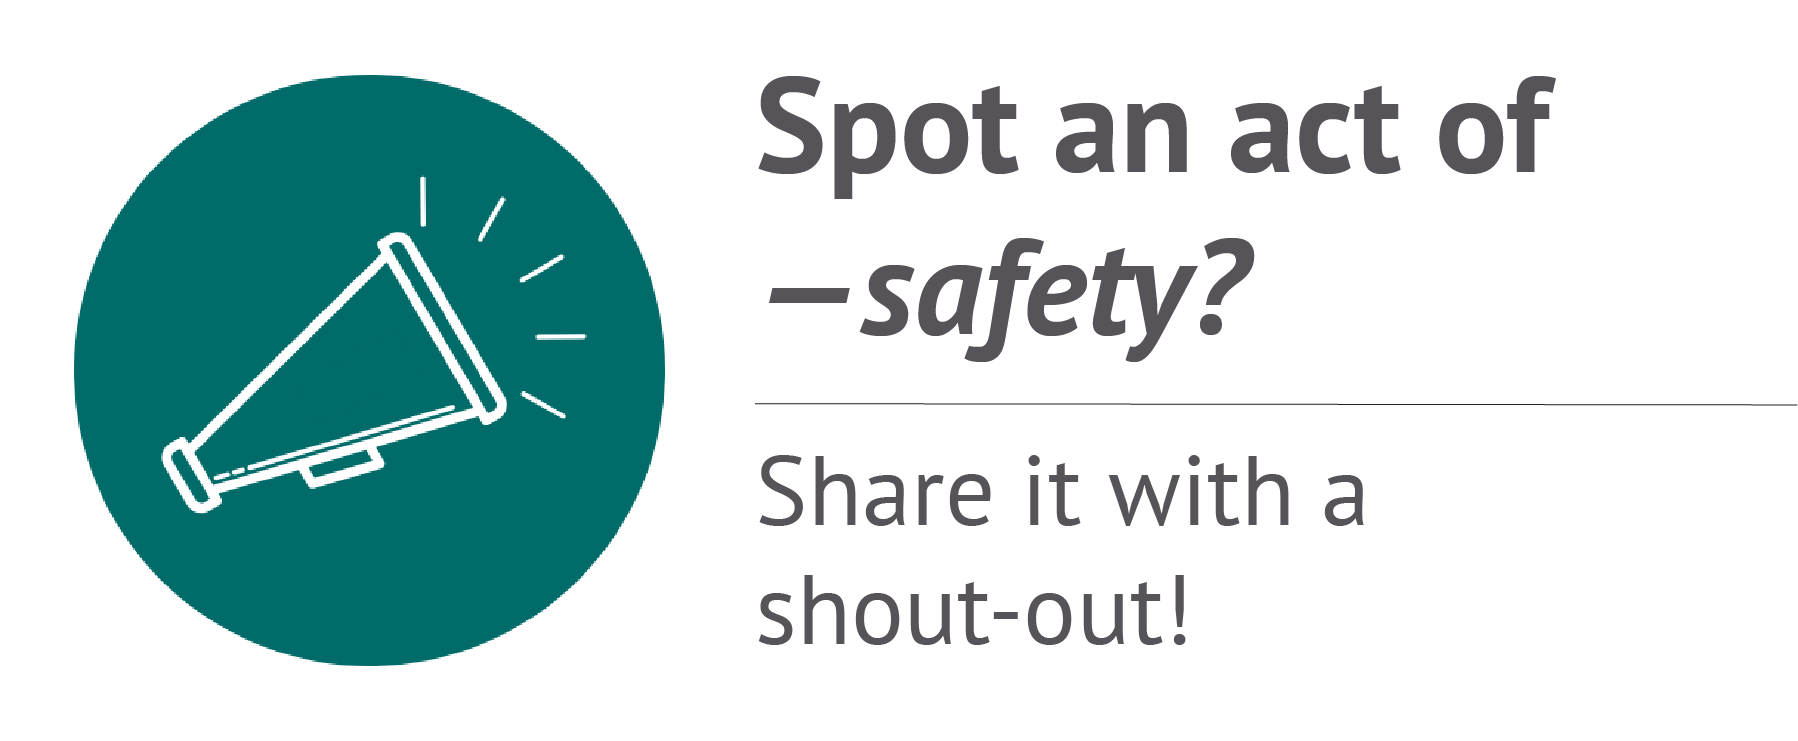 Spot an act of safety? Share it with a shout-out!